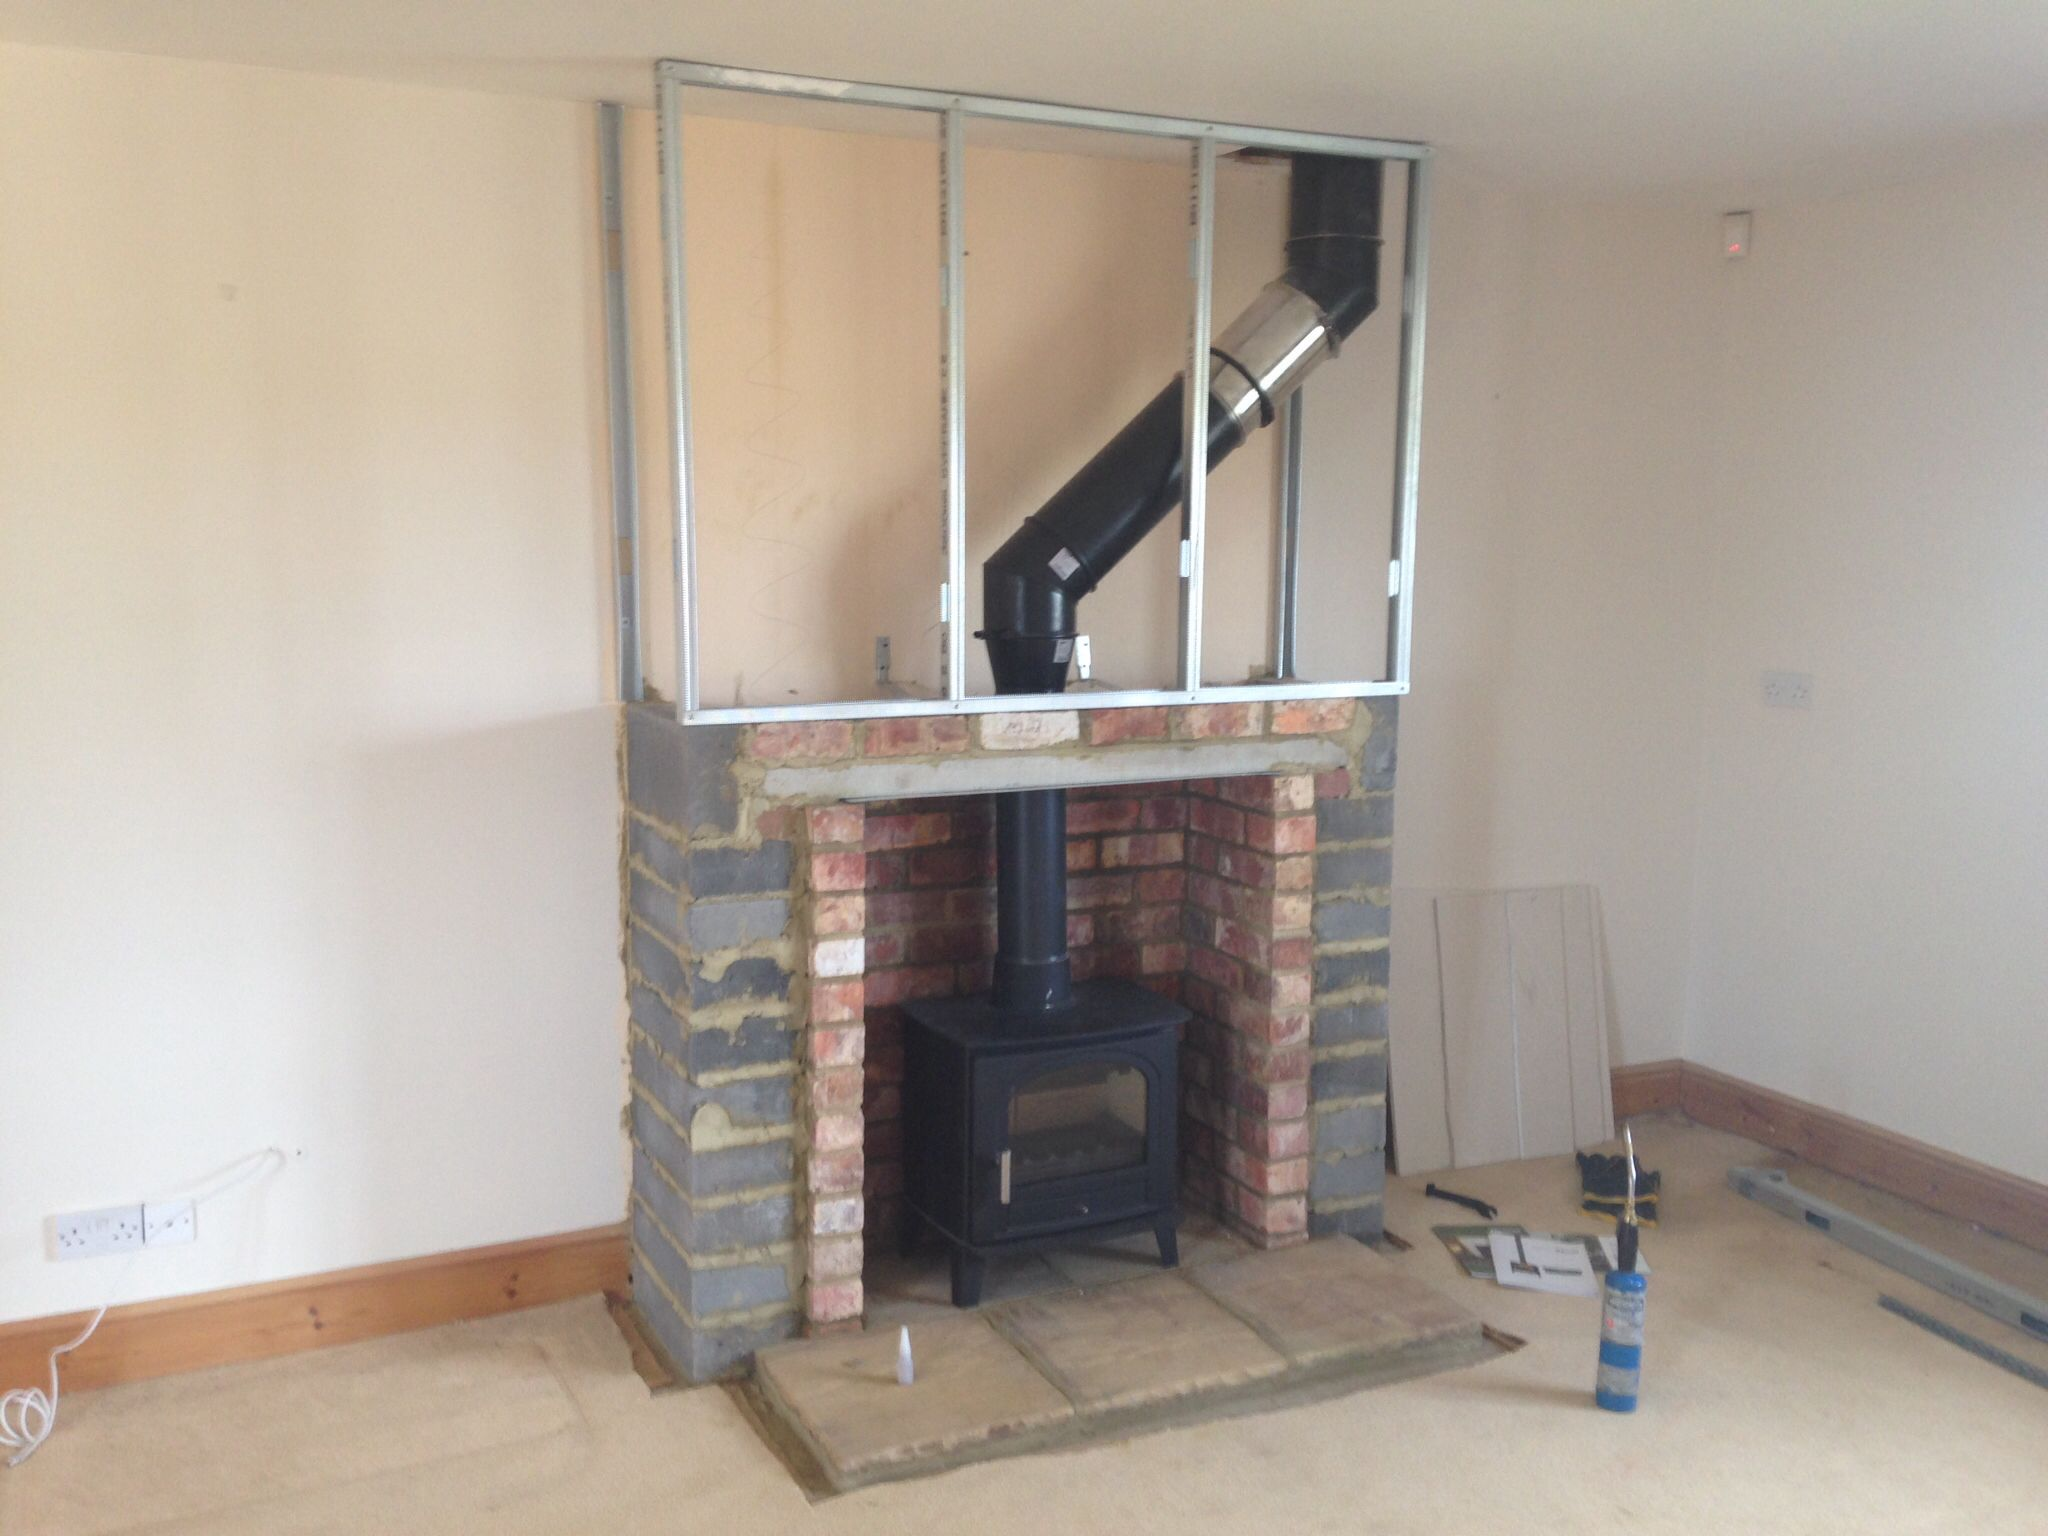 Wood stove surround ideas - Wood Burning Stove Surround Fireplace False Chimney Breast Fitted 2014 By Colesforfires Co Uk